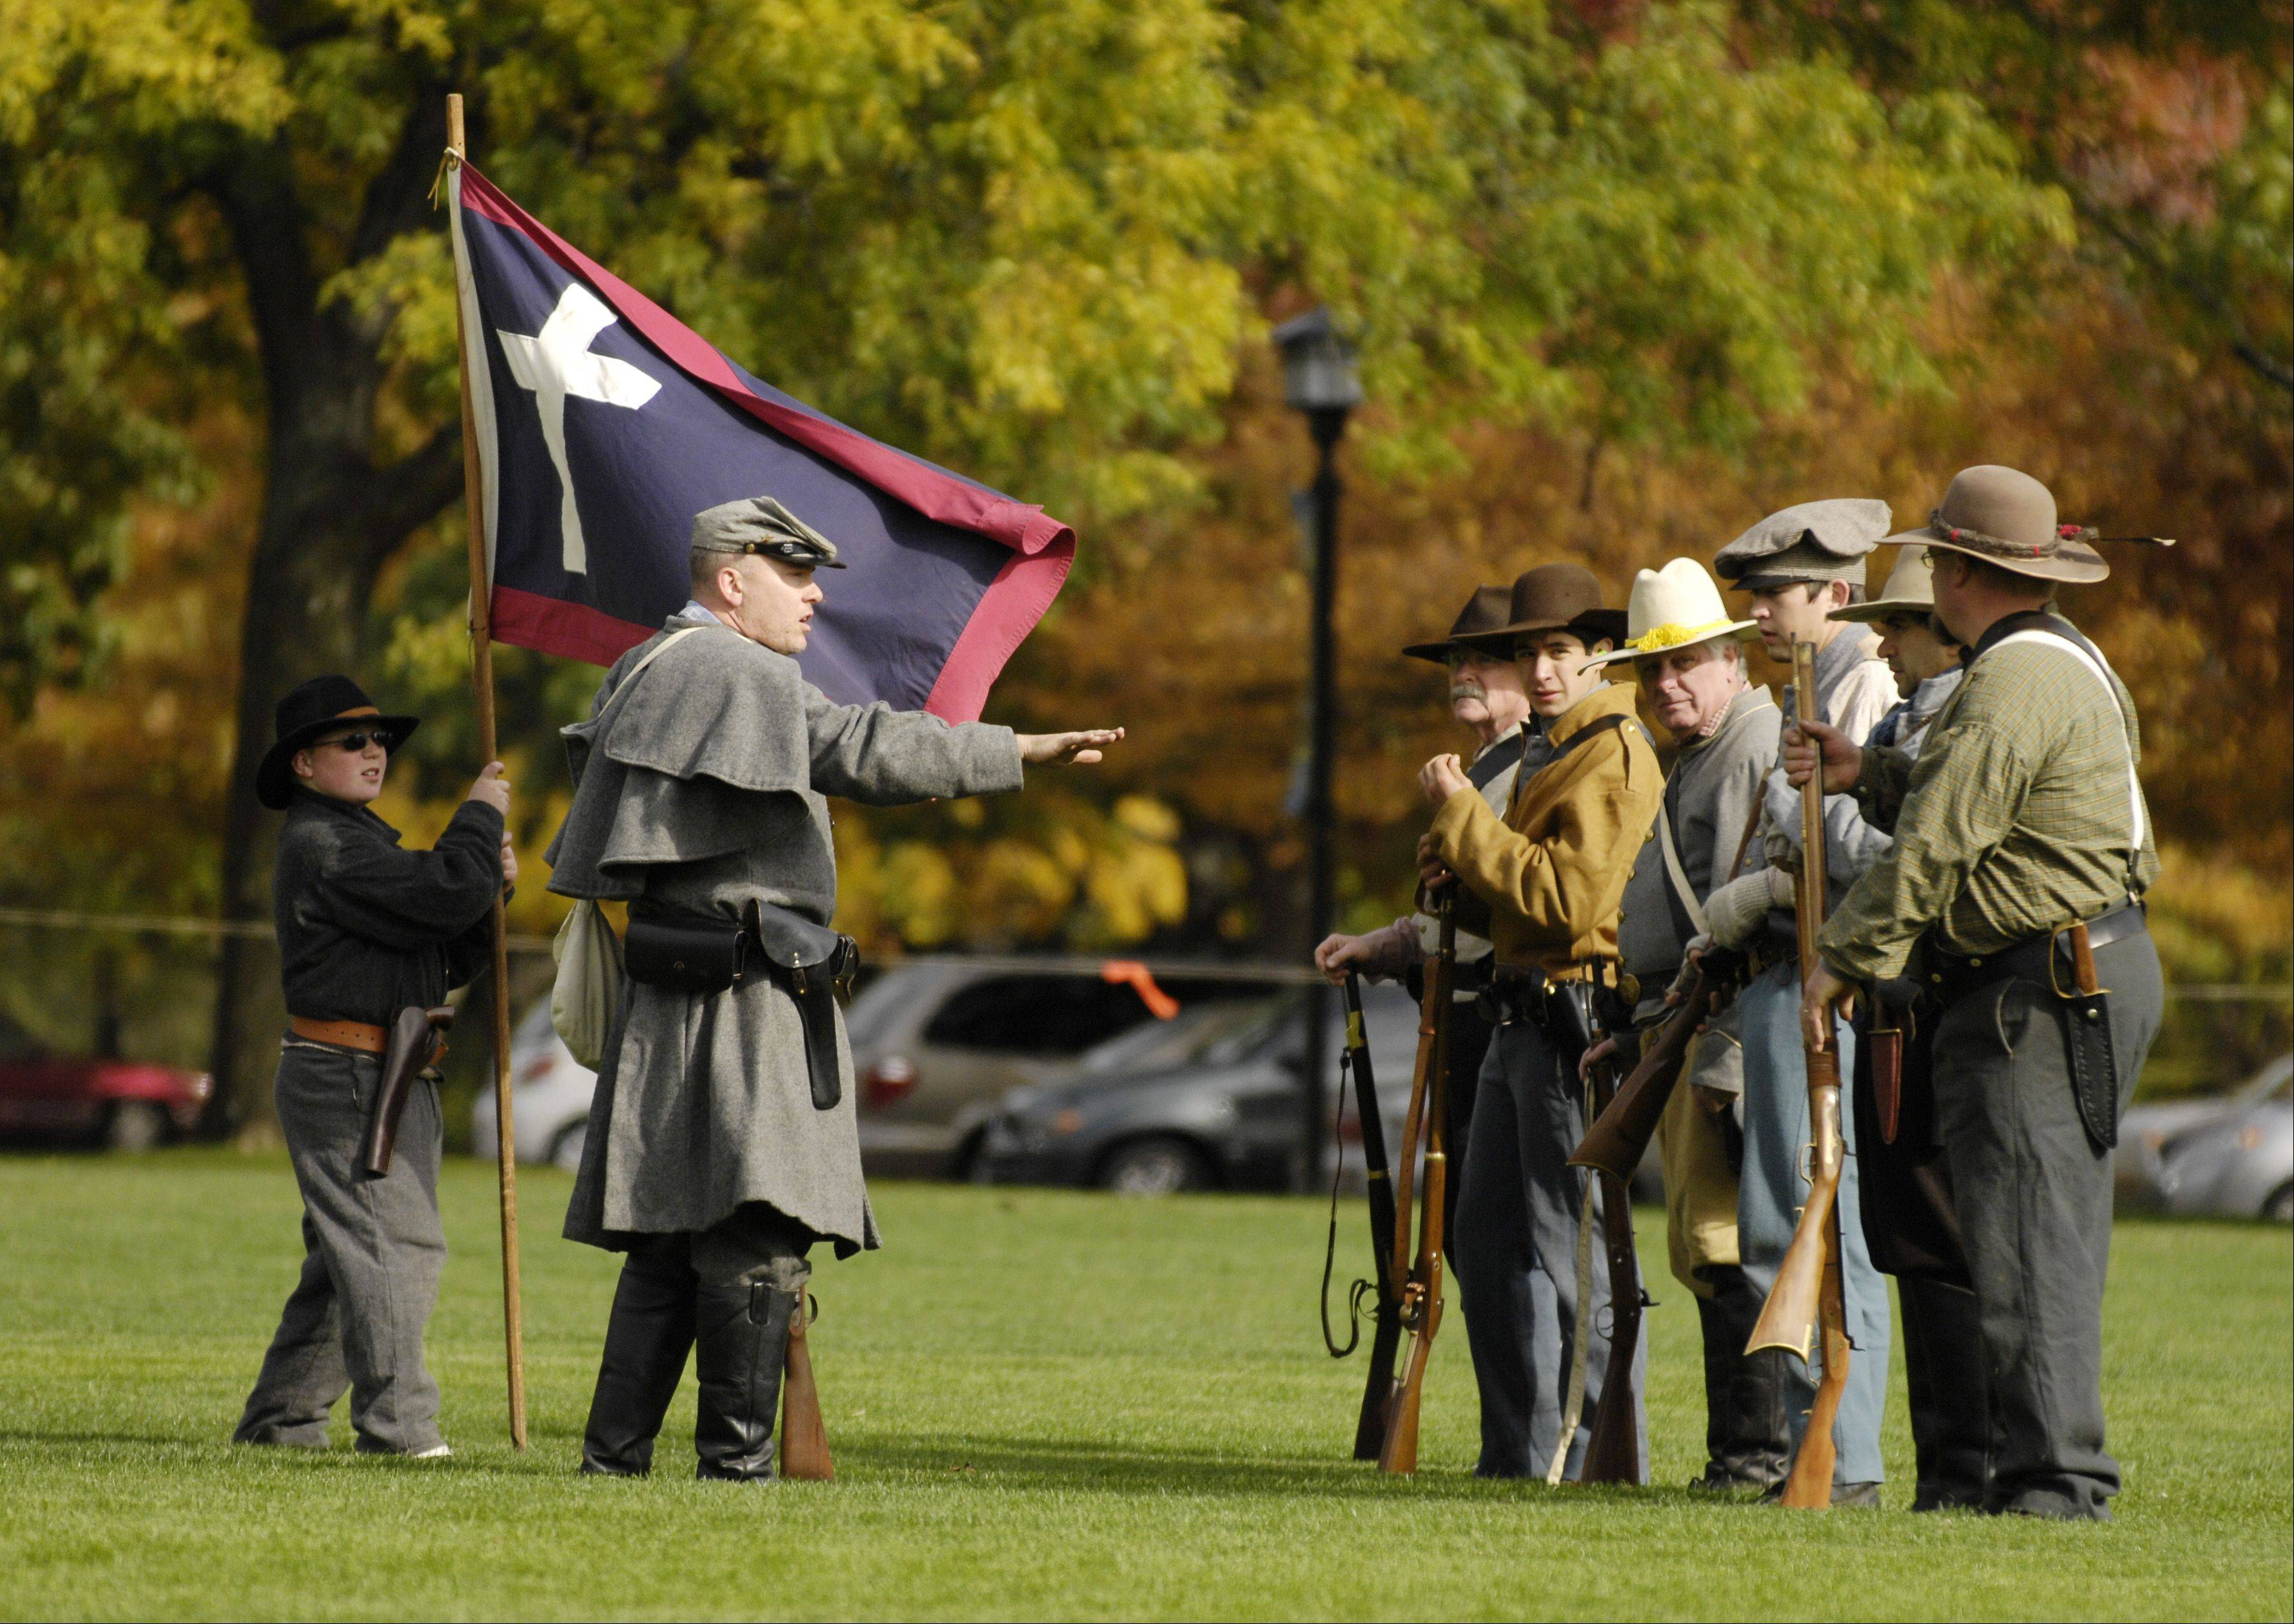 Visitors can watch re-enactors perform drills and more at a Civil War encampment set for Sept. 7-8 at the Batavia Riverwalk and Depot Museum.